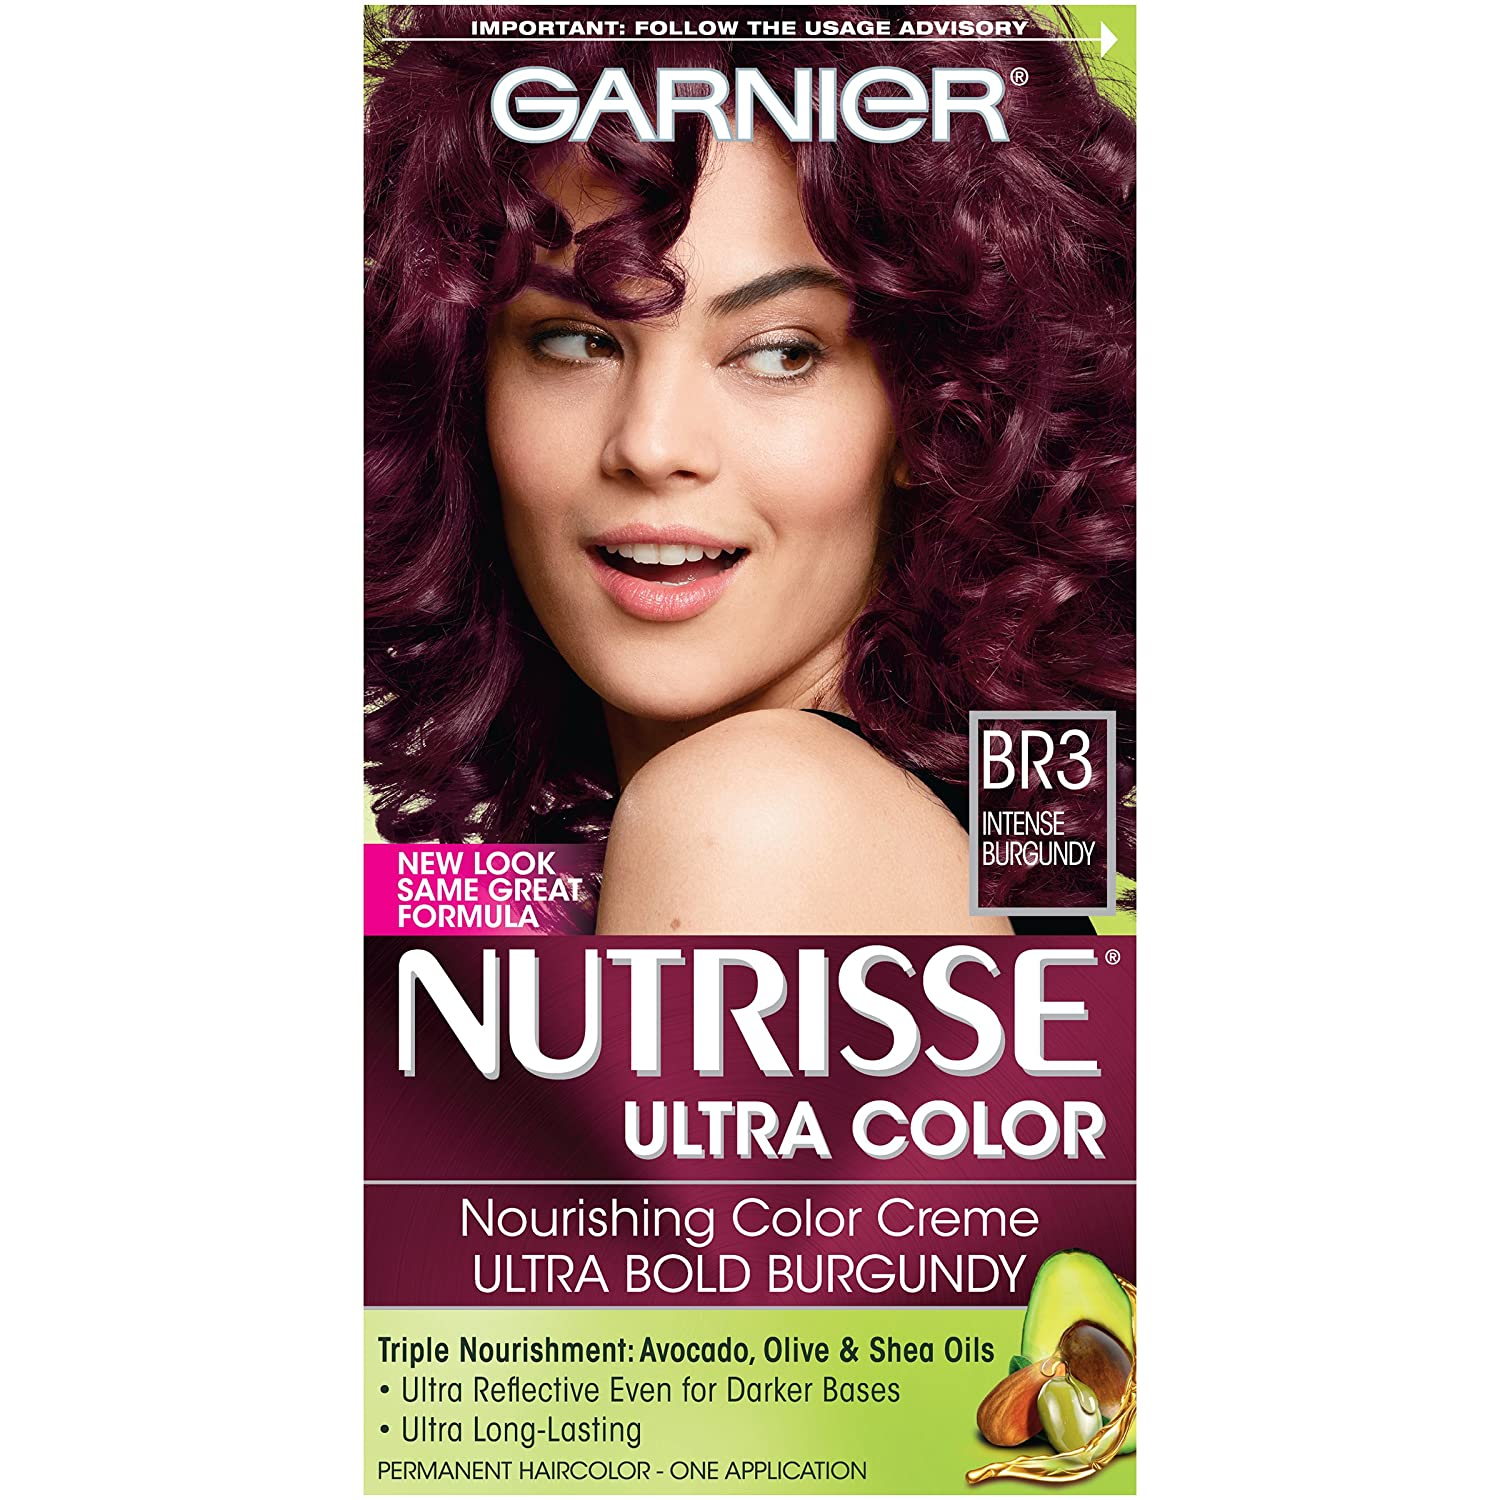 Garnier Nutrisse Ultra Color Nourishing Color Creme, BR3 Intense Burgundy Garnier Hair Color K1580000